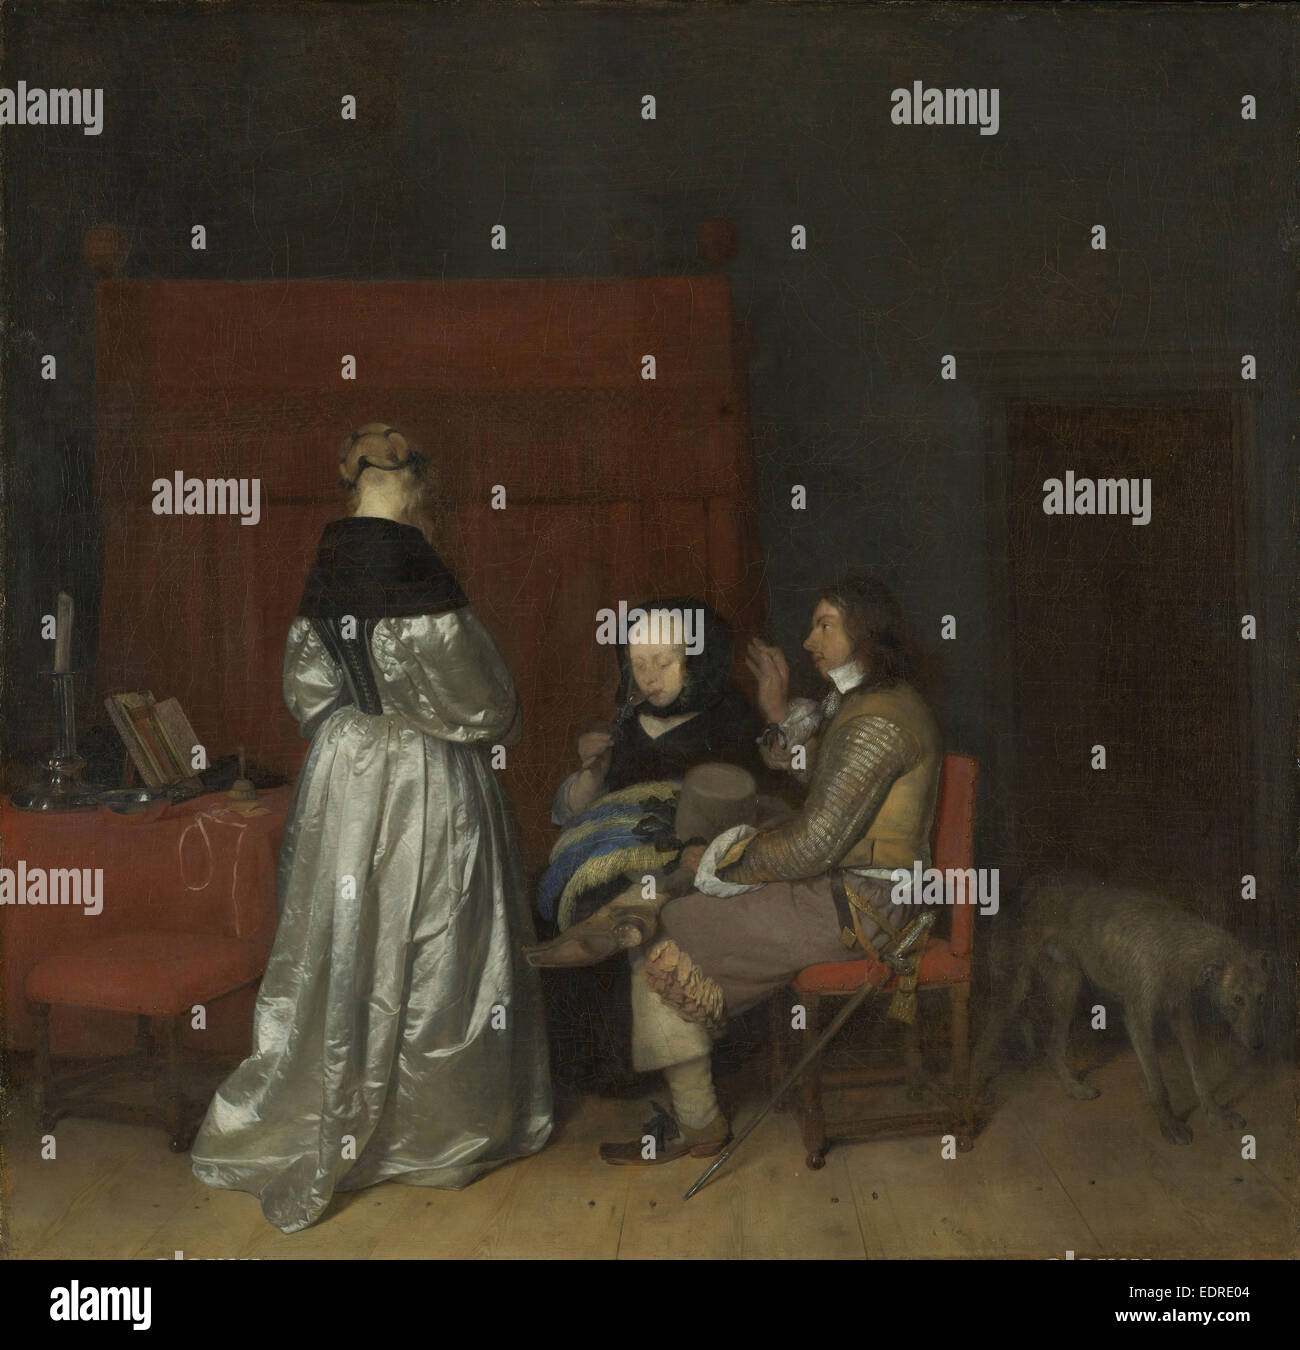 Gallant Conversation, Known as 'The Paternal Admonition', Gerard ter Borch (II), c. 1654 - Stock Image